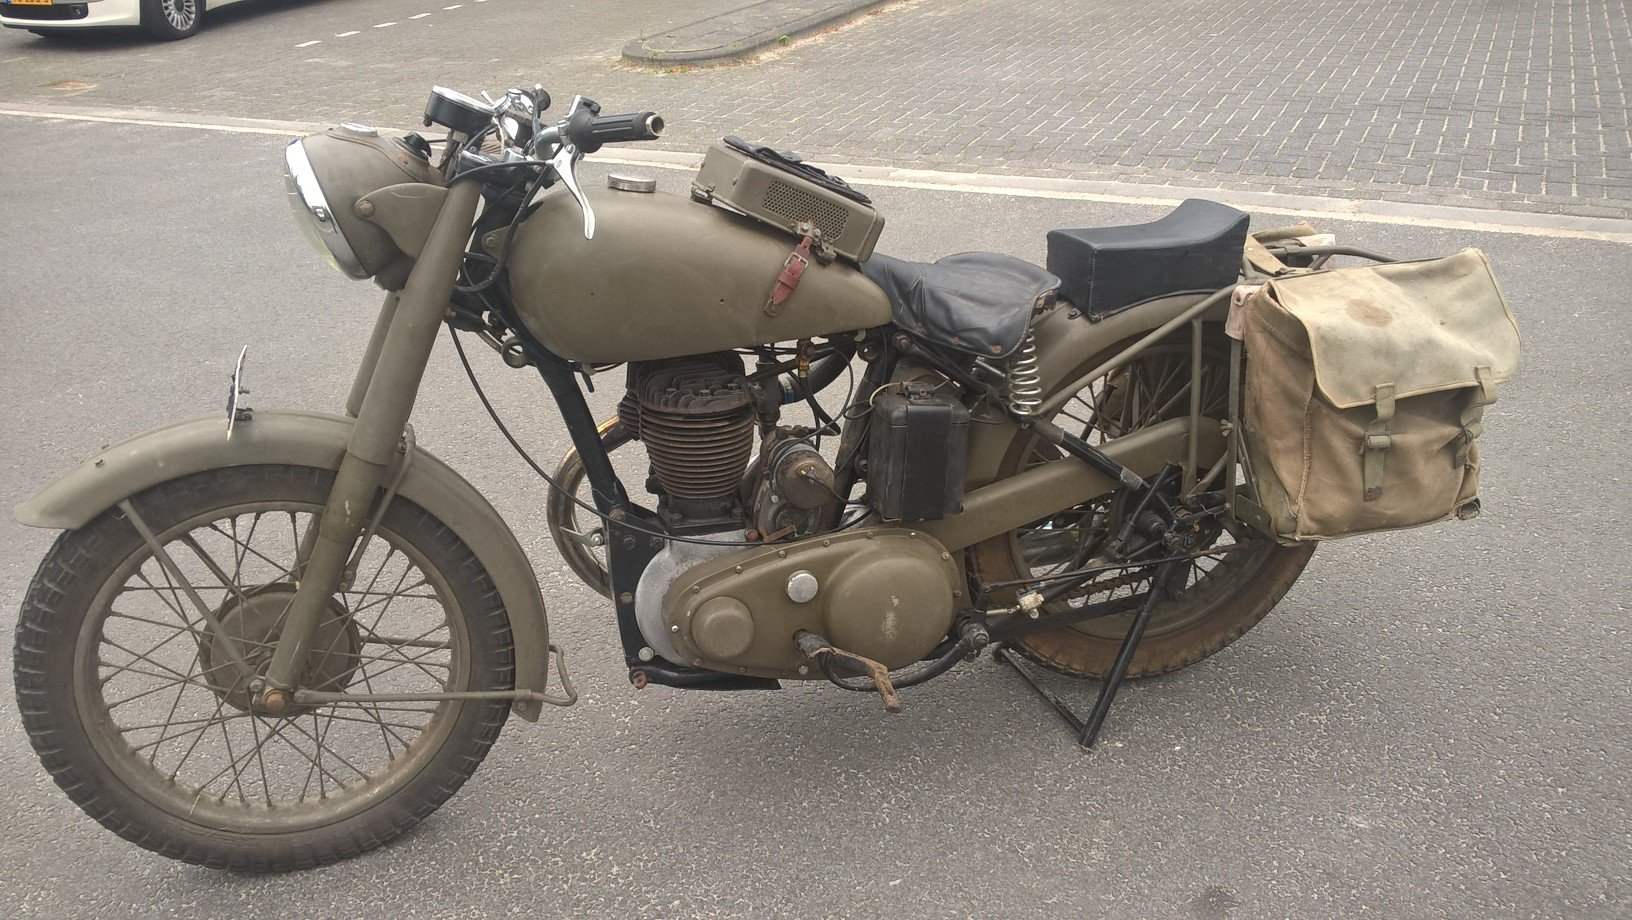 1950 Bsa model m21 swedish army For Sale (picture 5 of 6)